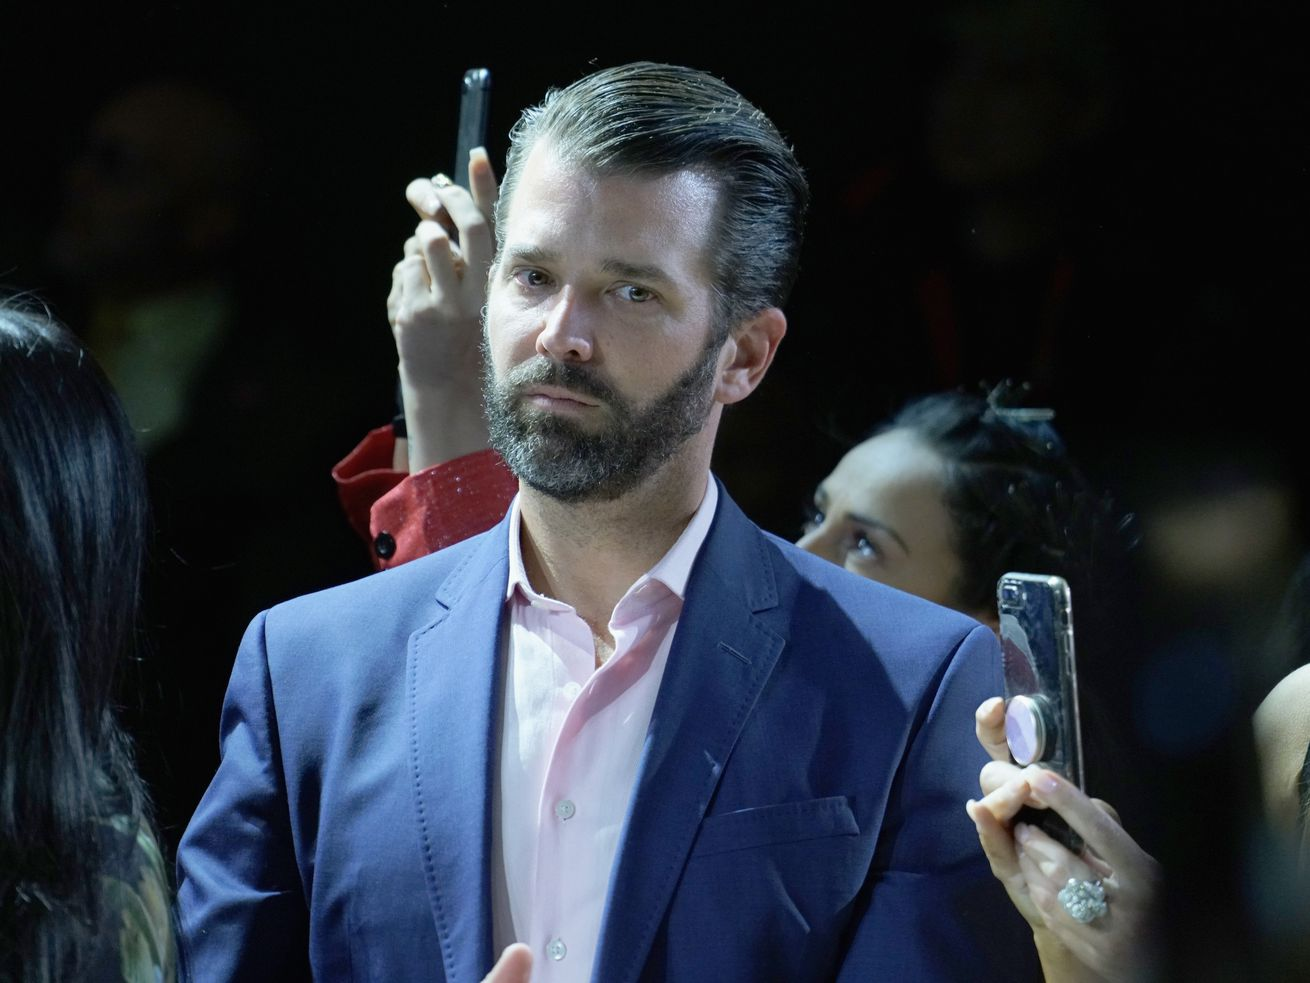 Donald Trump Jr. at a Fashion Week event on February 13, 2019, in New York City.